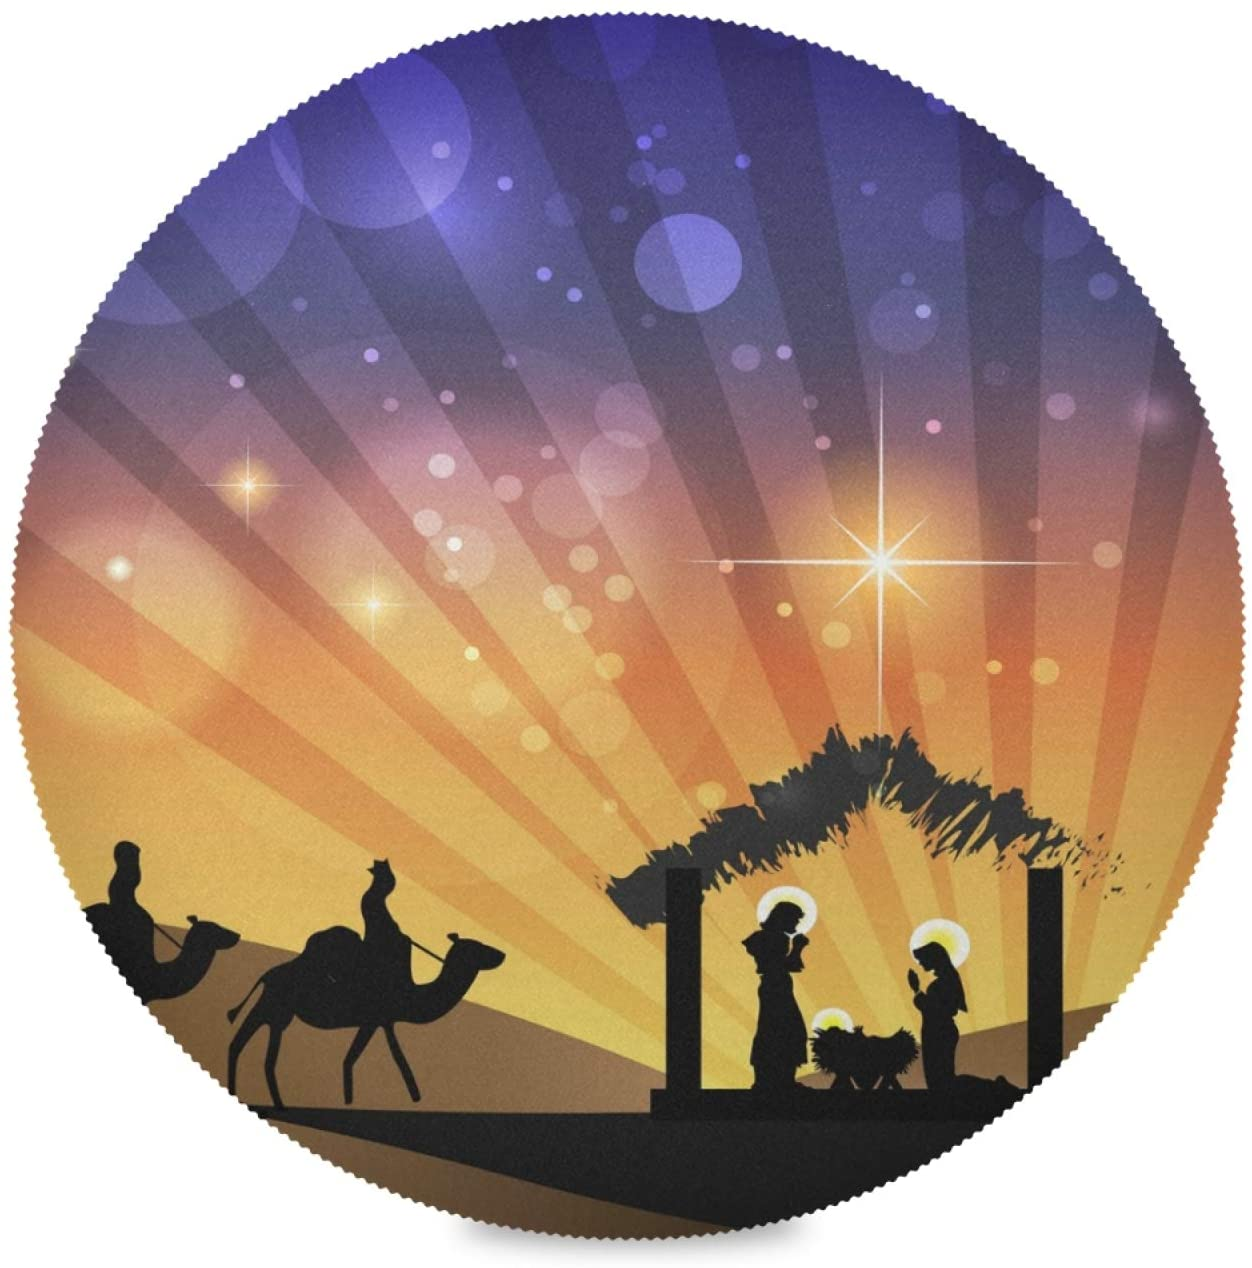 ALAZA Christmas Nativity Scene1 Round Placemats for Dining Table Placemat Set of 4 Table Settings Table Mats for Home Kitchen Holiday Decoration